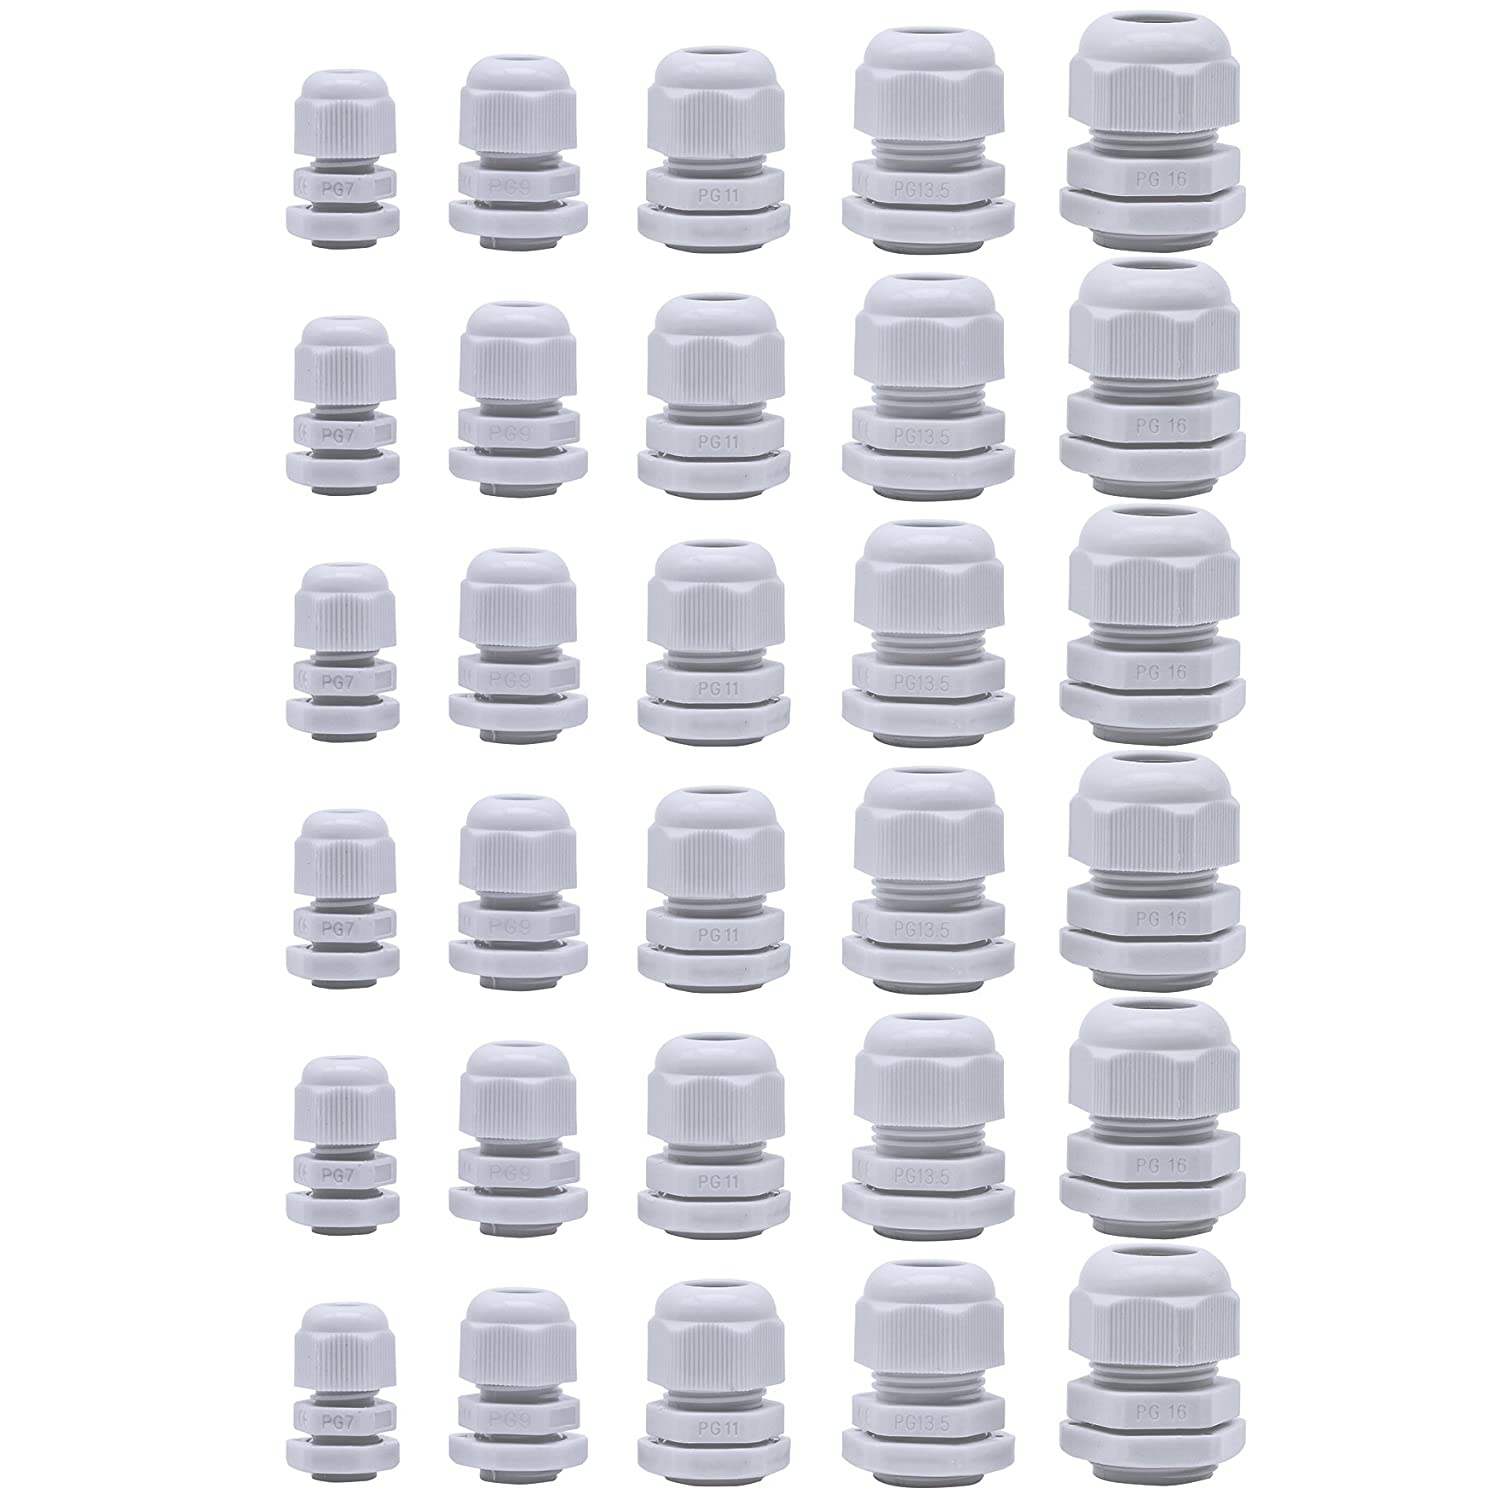 30 Pcs Cable Glands Plastic Waterproof Cable Connectors Adjustable 3.5 13mm Cable Gland Joints PG7 PG9 PG11 PG13.5 PG16 White by Jetovo